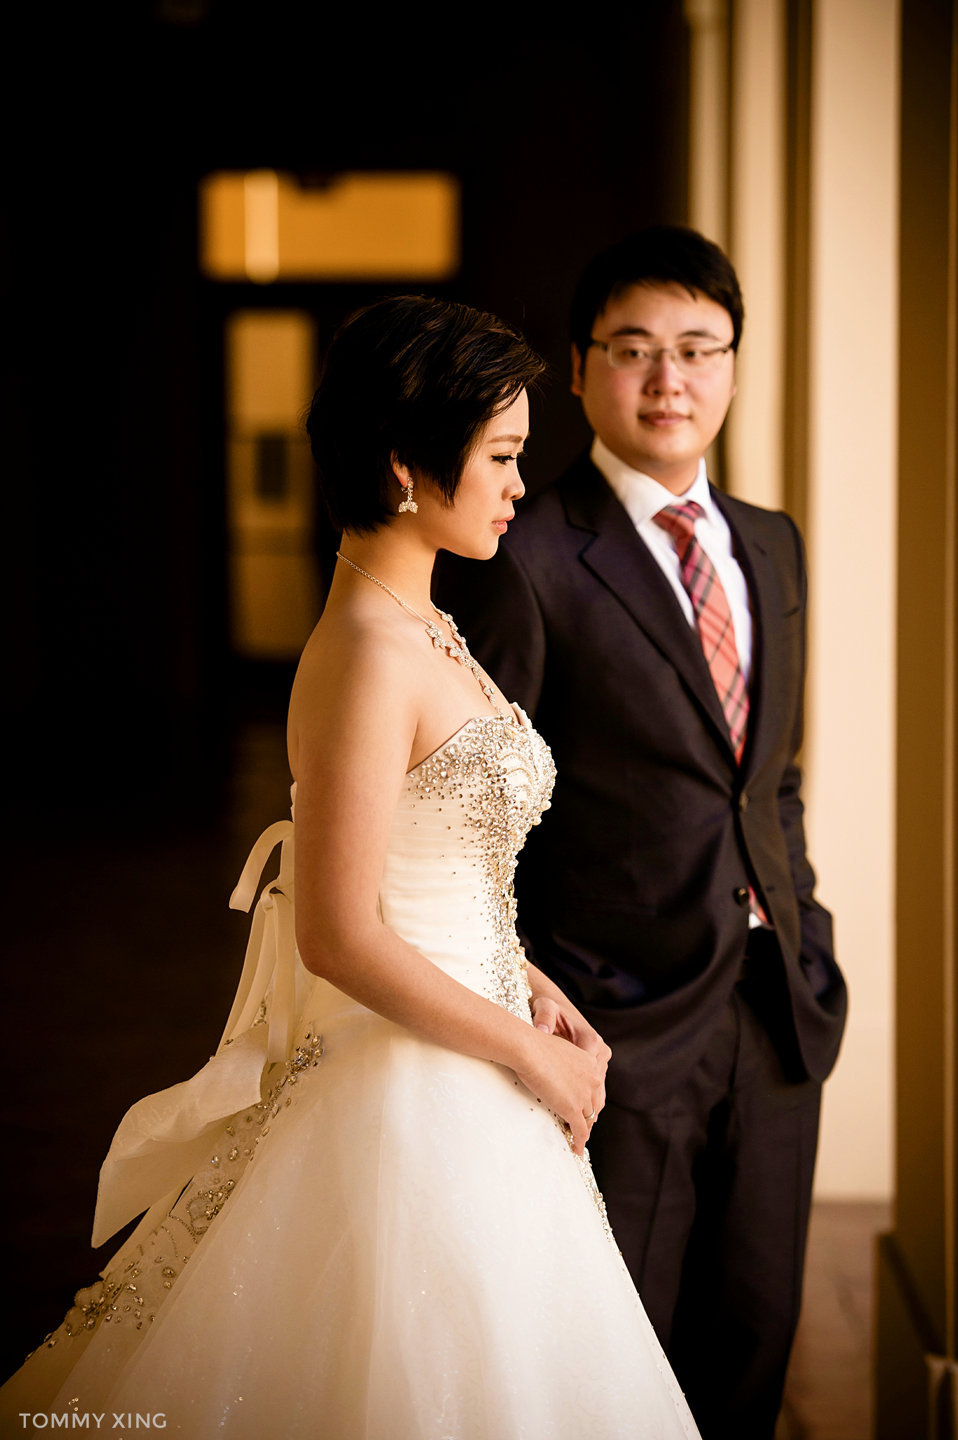 Los Angeles Chinese Wedding Photographer Tommy Xing 洛杉矶婚礼婚纱摄影 Pasadena city hall 5.jpg